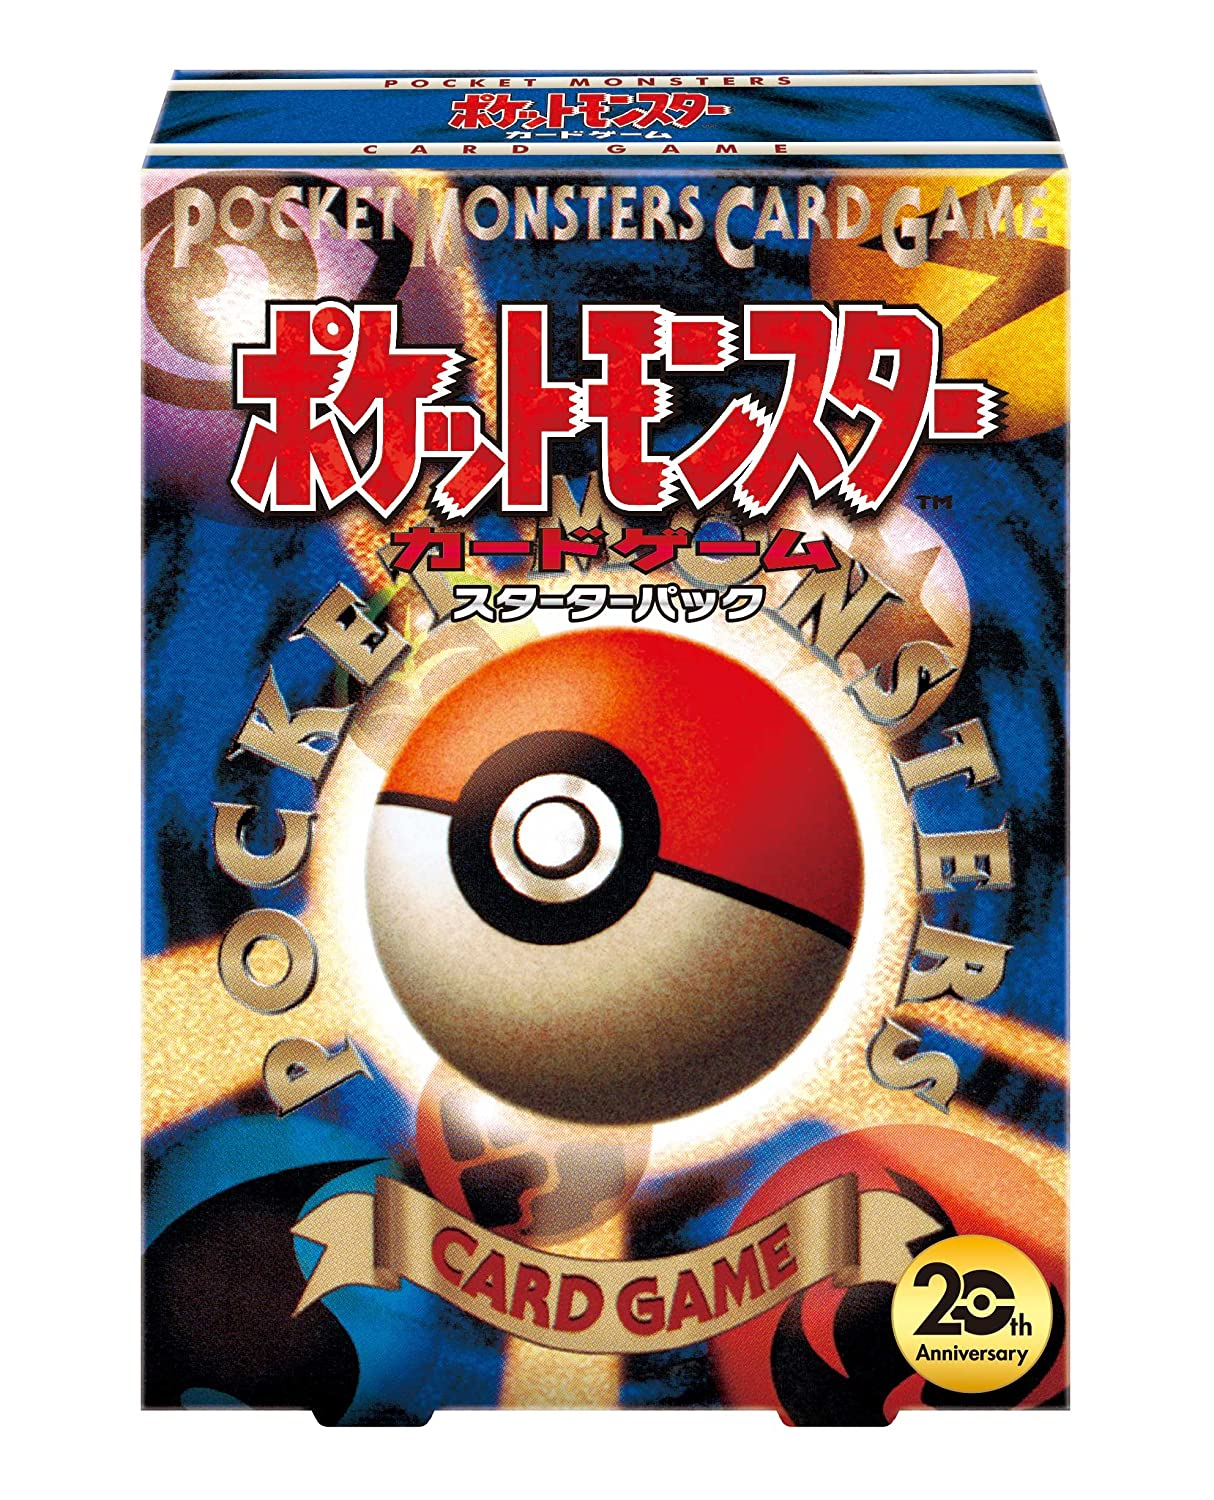 Pokemon card game XY BREAK Pocket Monsters Card game starter pack. by Pok?on